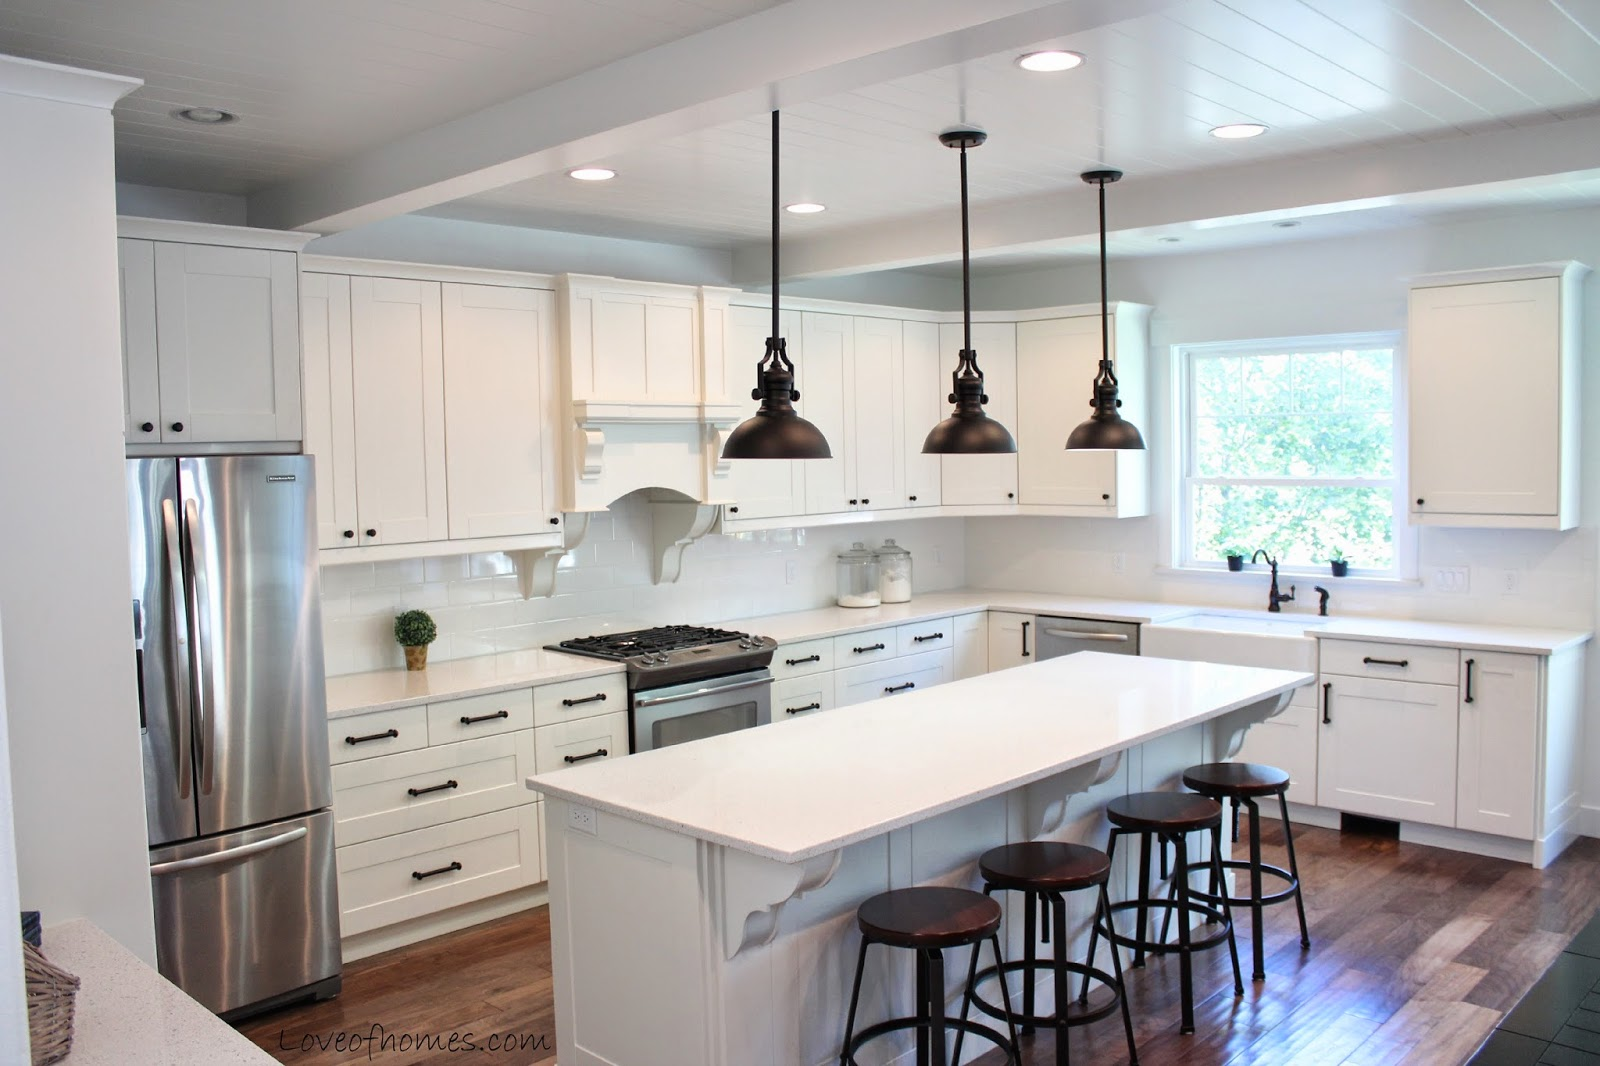 ikea kitchen cupboards rustic lighting ideas love of homes: remodel {reveal}